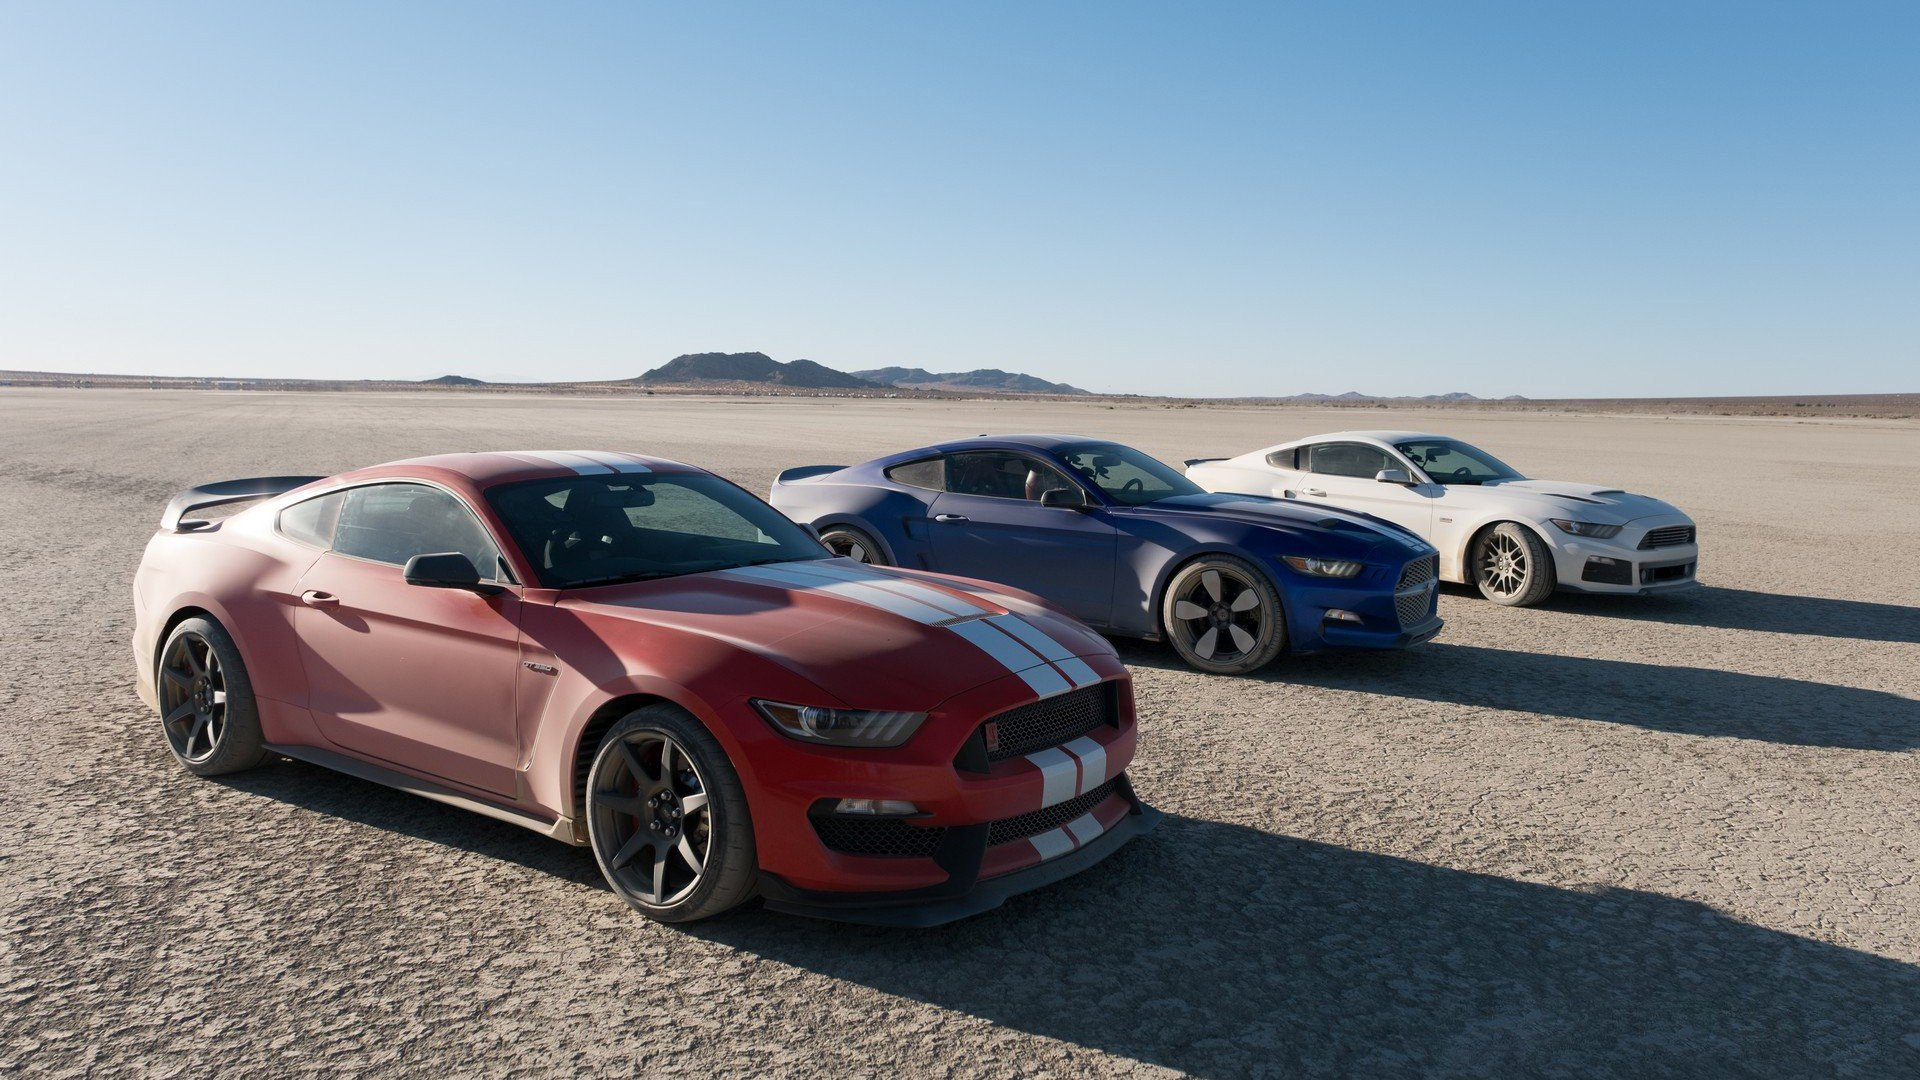 Car Ford Mustang The Grand Tour Gtr Ford Roush Hd Wallpapers Desktop And Mobile Images Photos